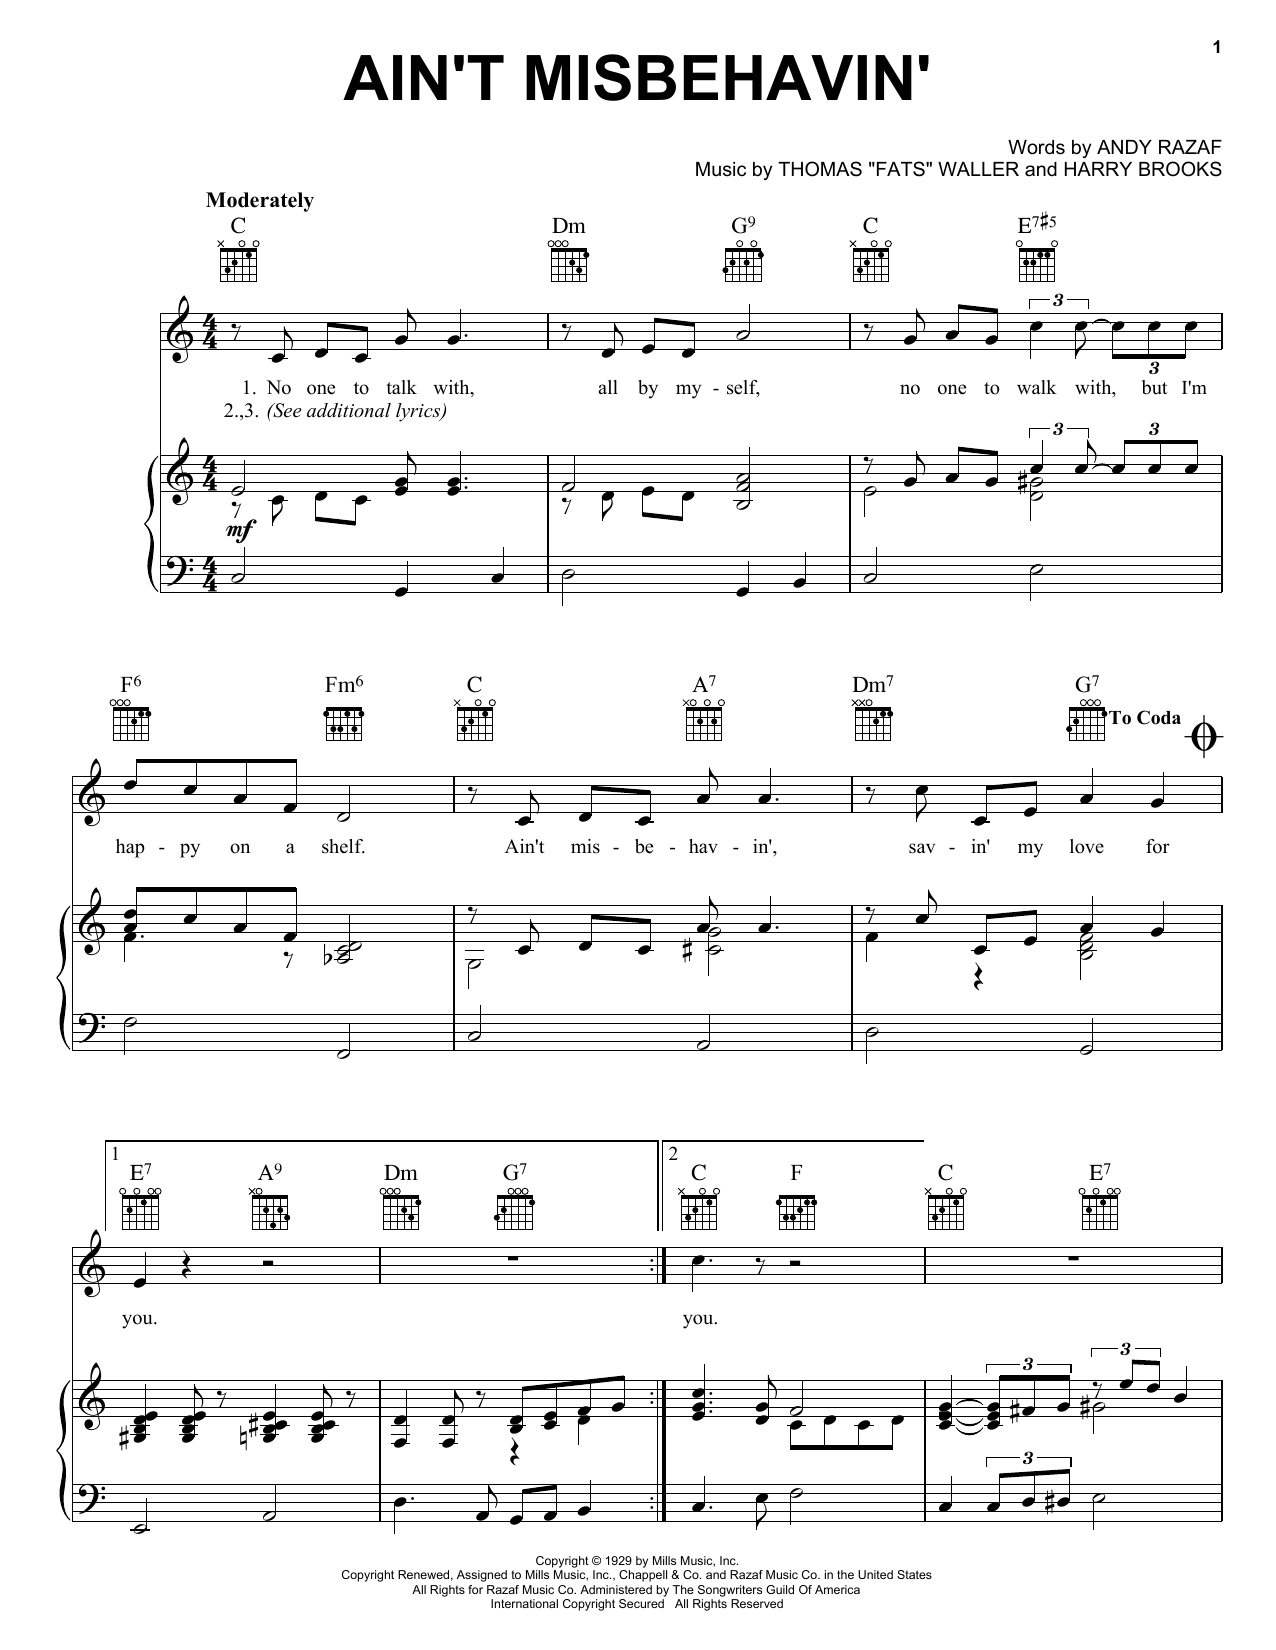 Fats Waller Ain't Misbehavin' sheet music notes and chords. Download Printable PDF.